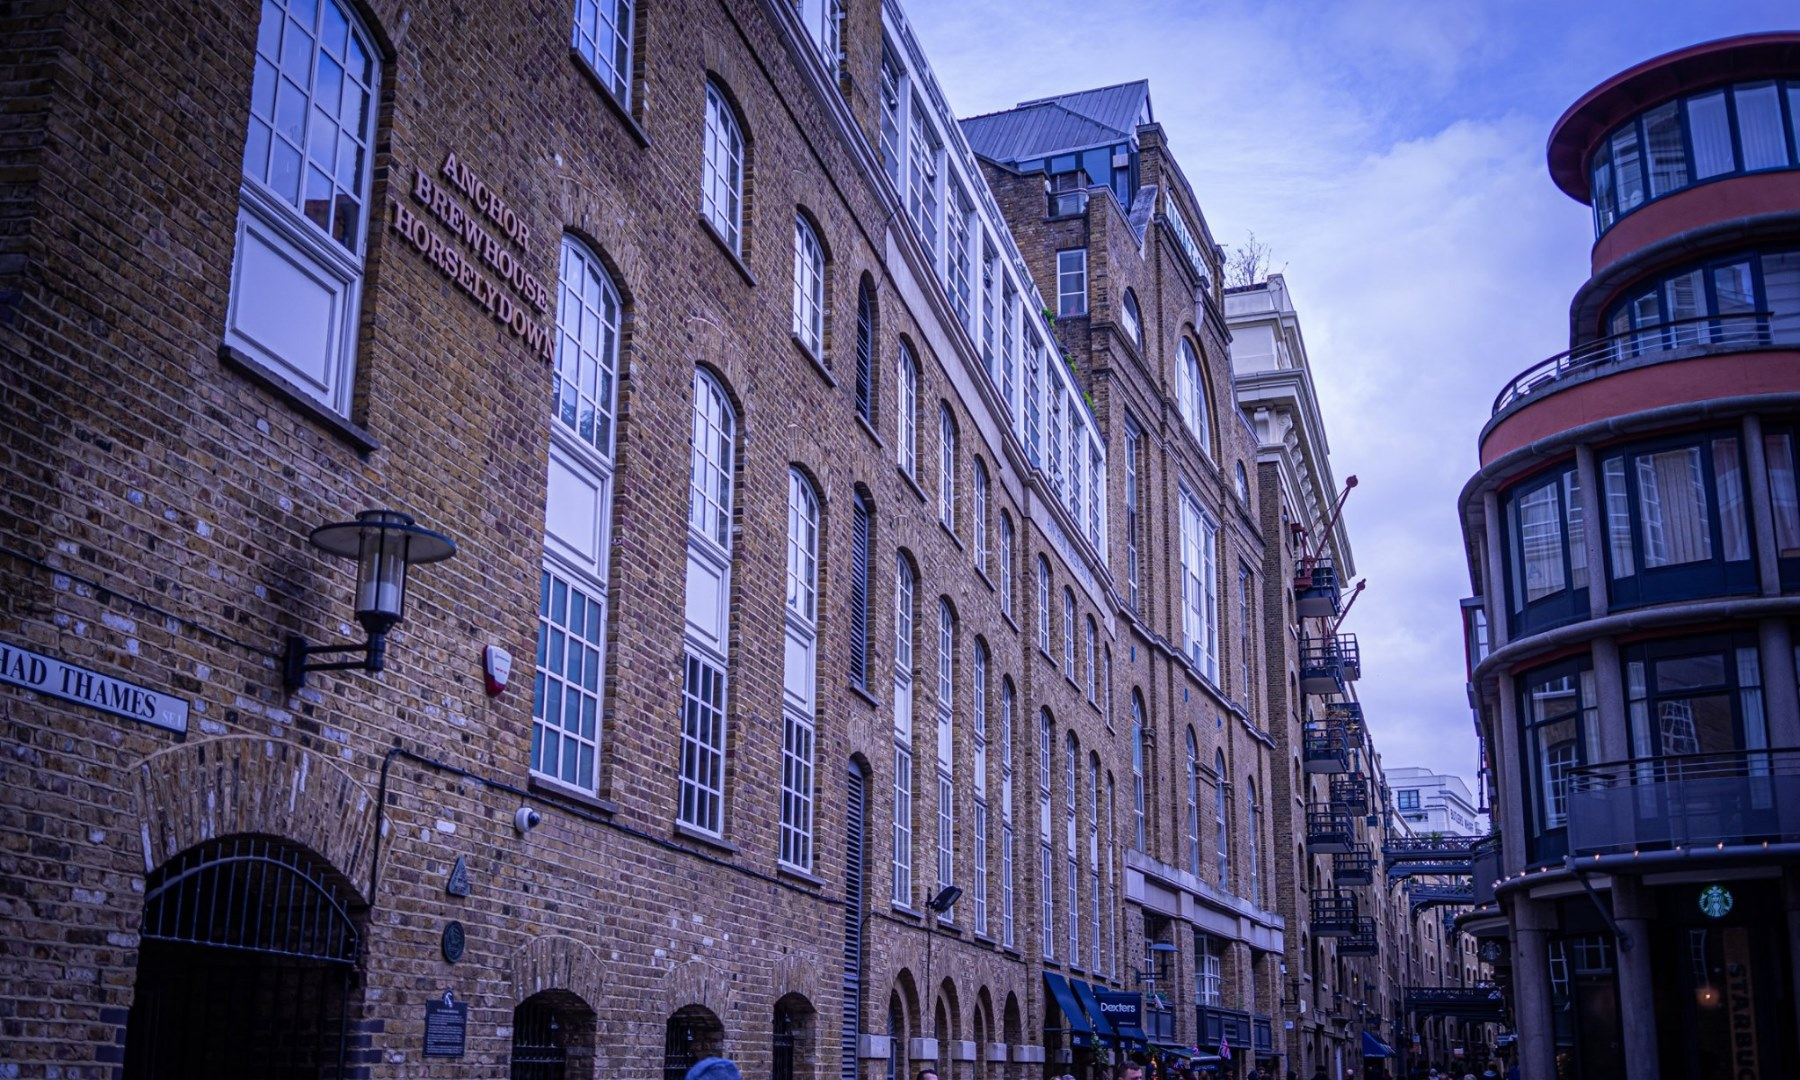 Anchor Brewhouse in Bermondsey, London